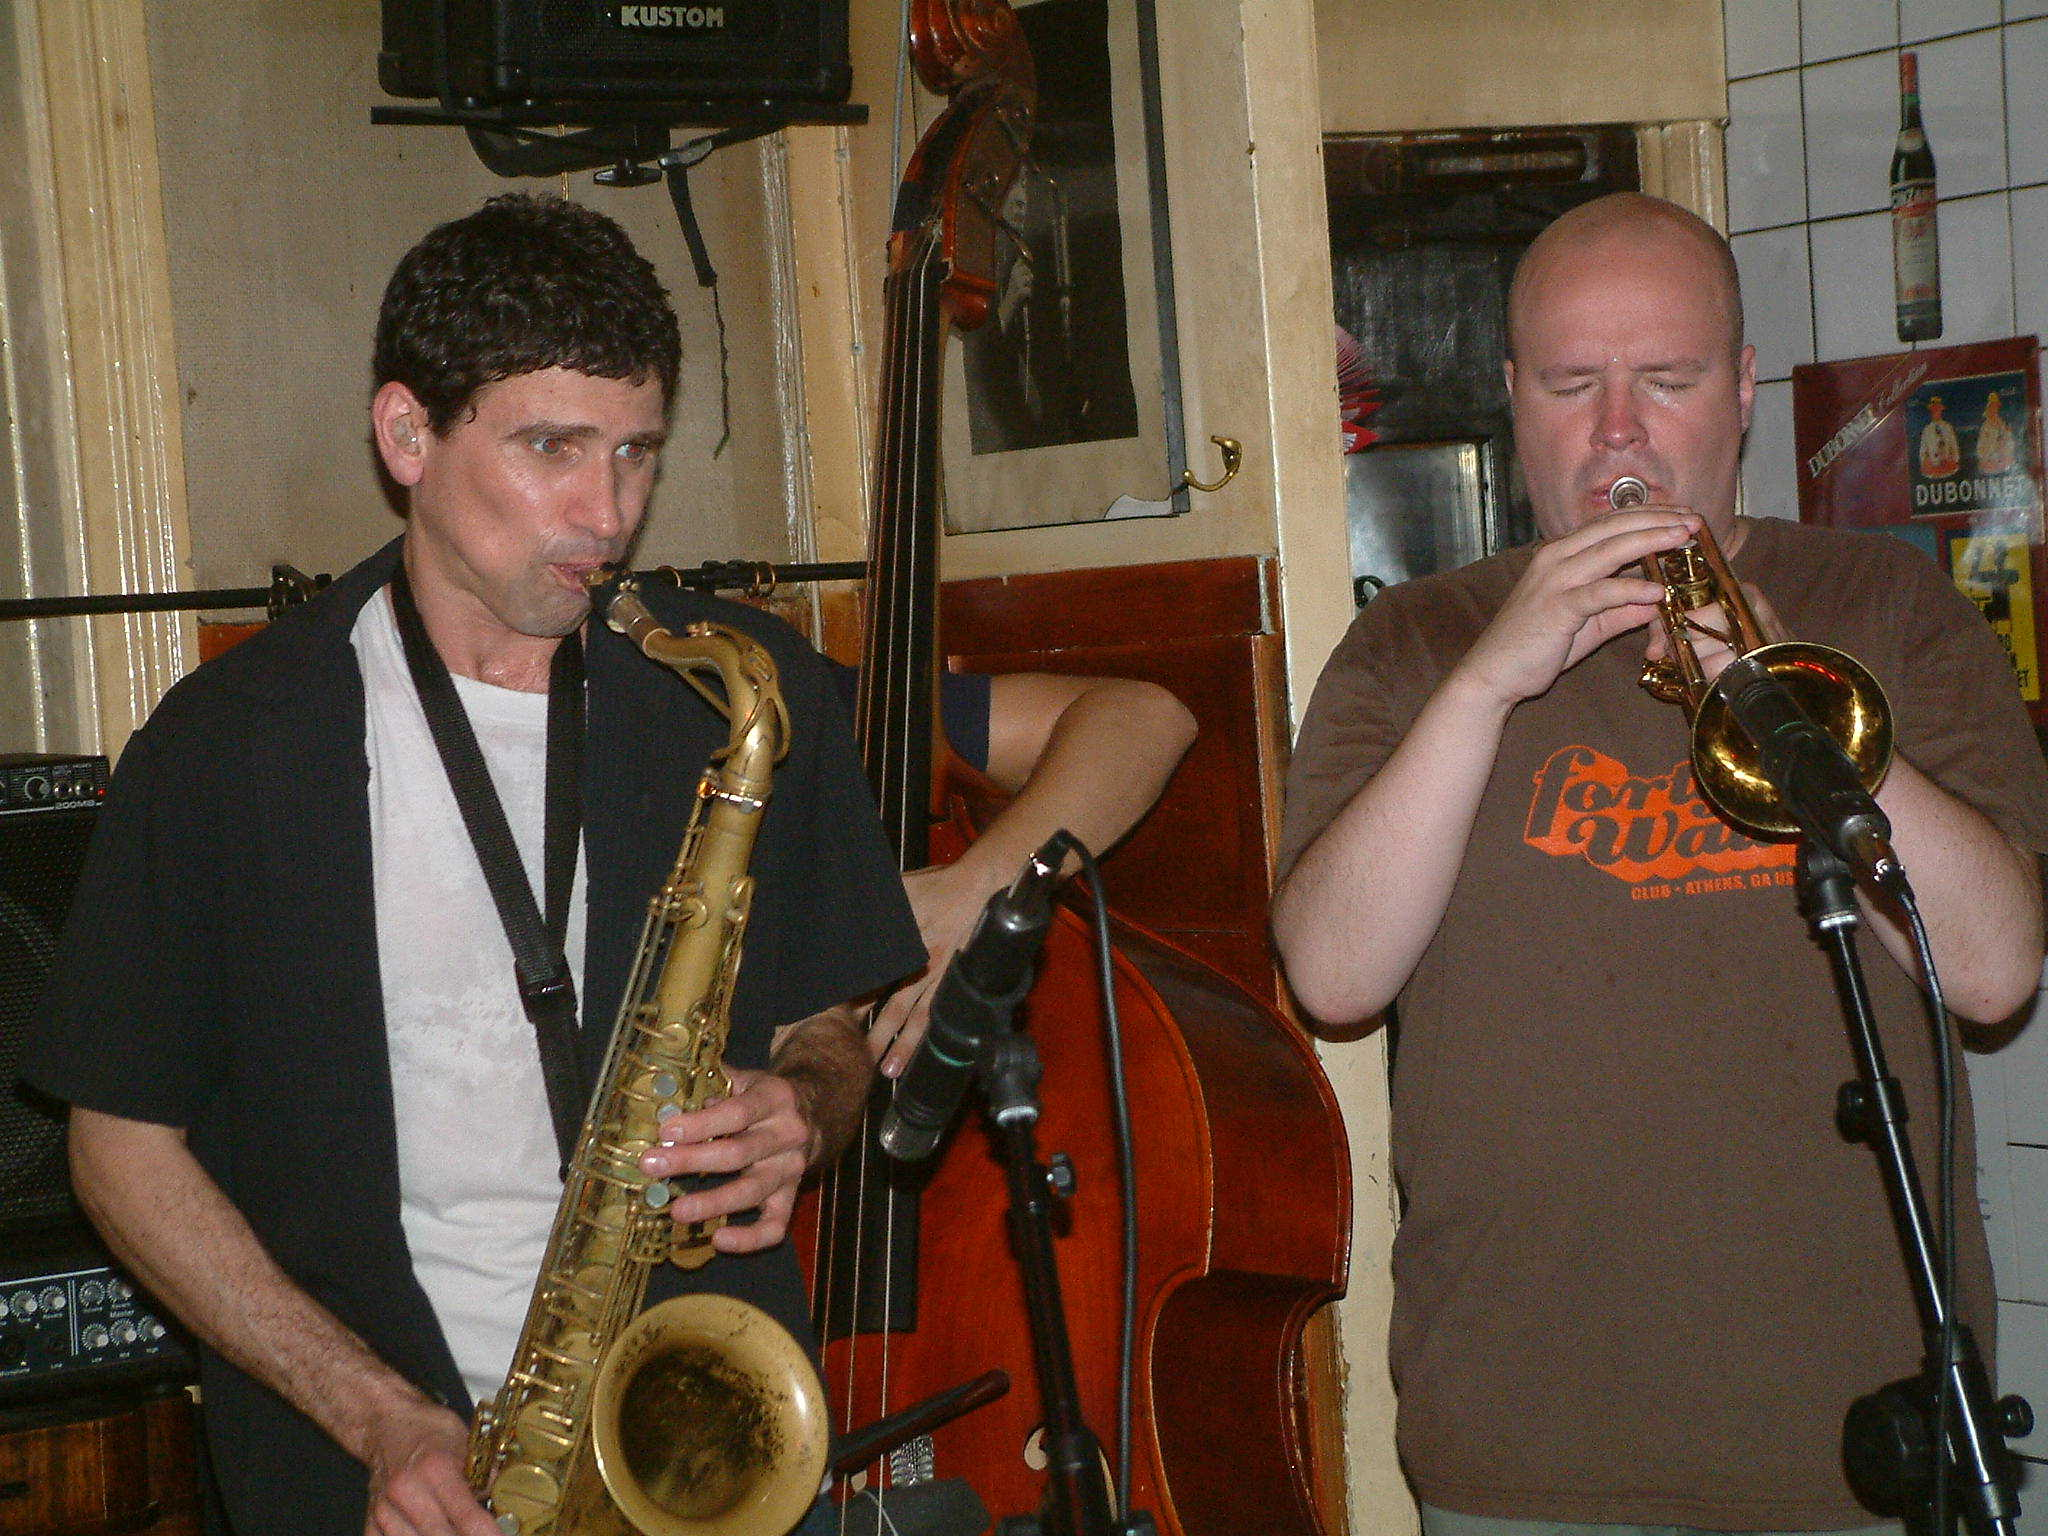 stephen gauci/magnus broo at the glenn miller cafe, stockholm sweden